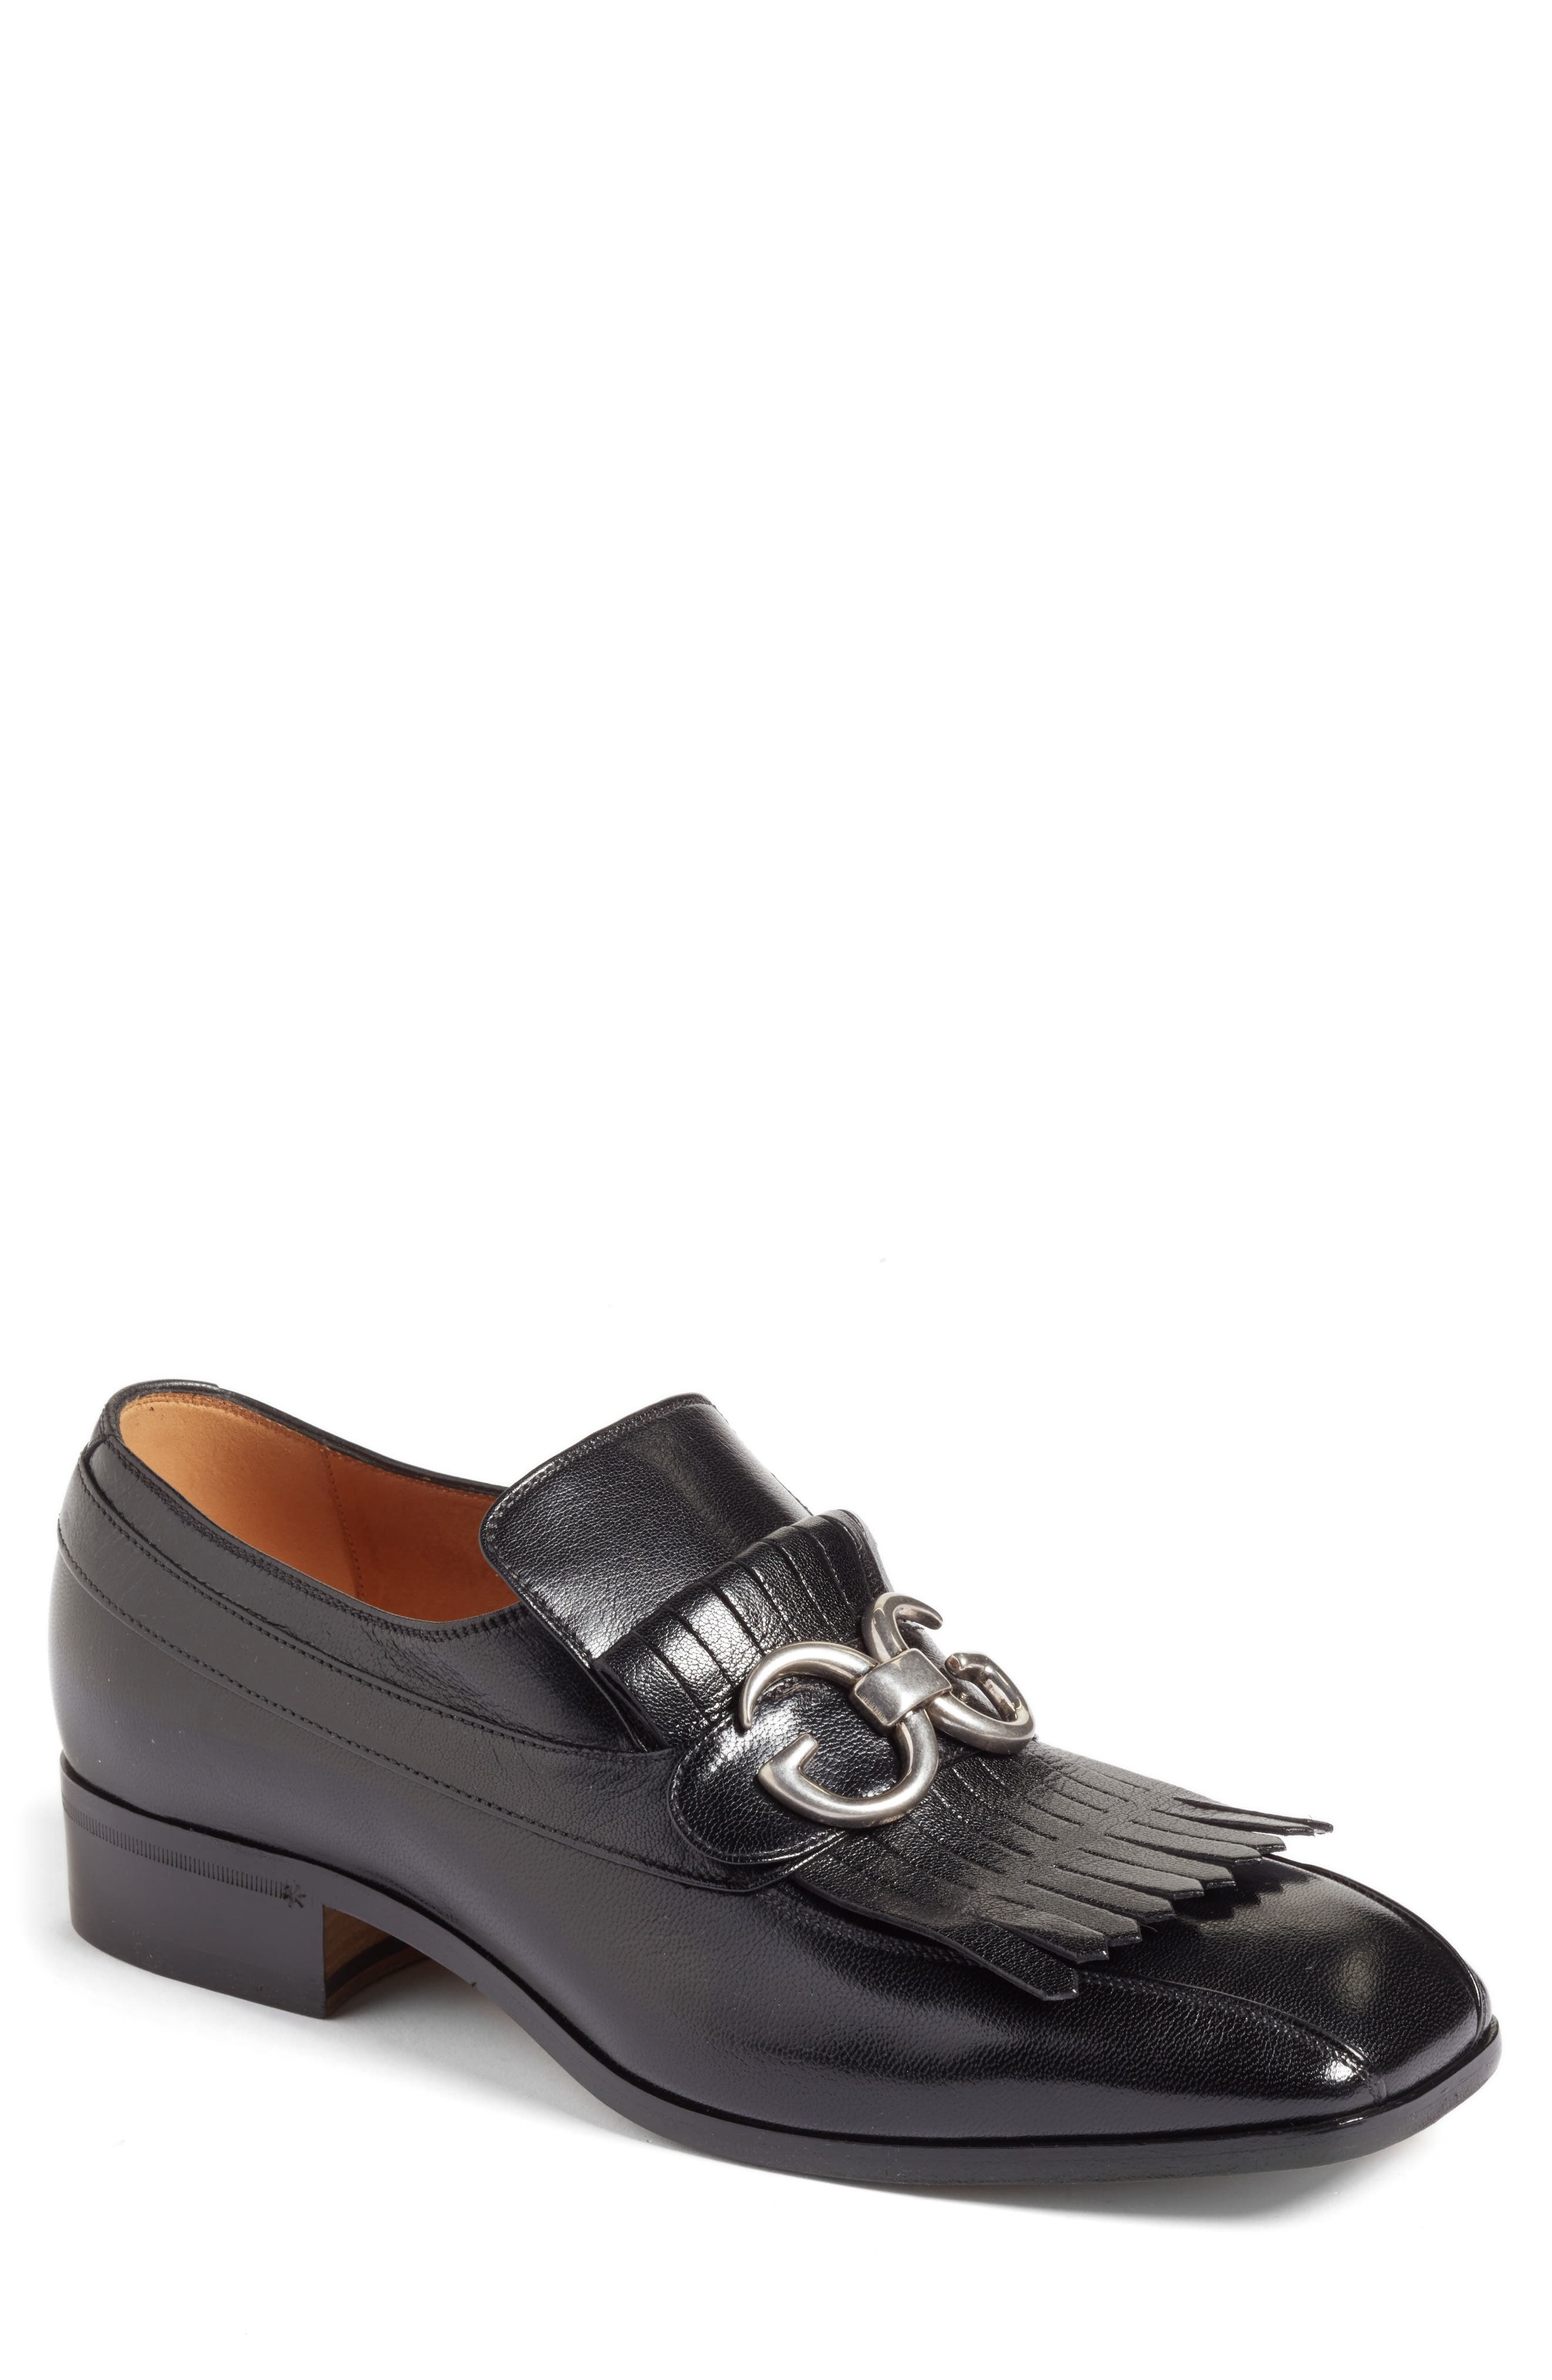 Main Image - Gucci Novel Marmont Kiltie Loafer (Men)